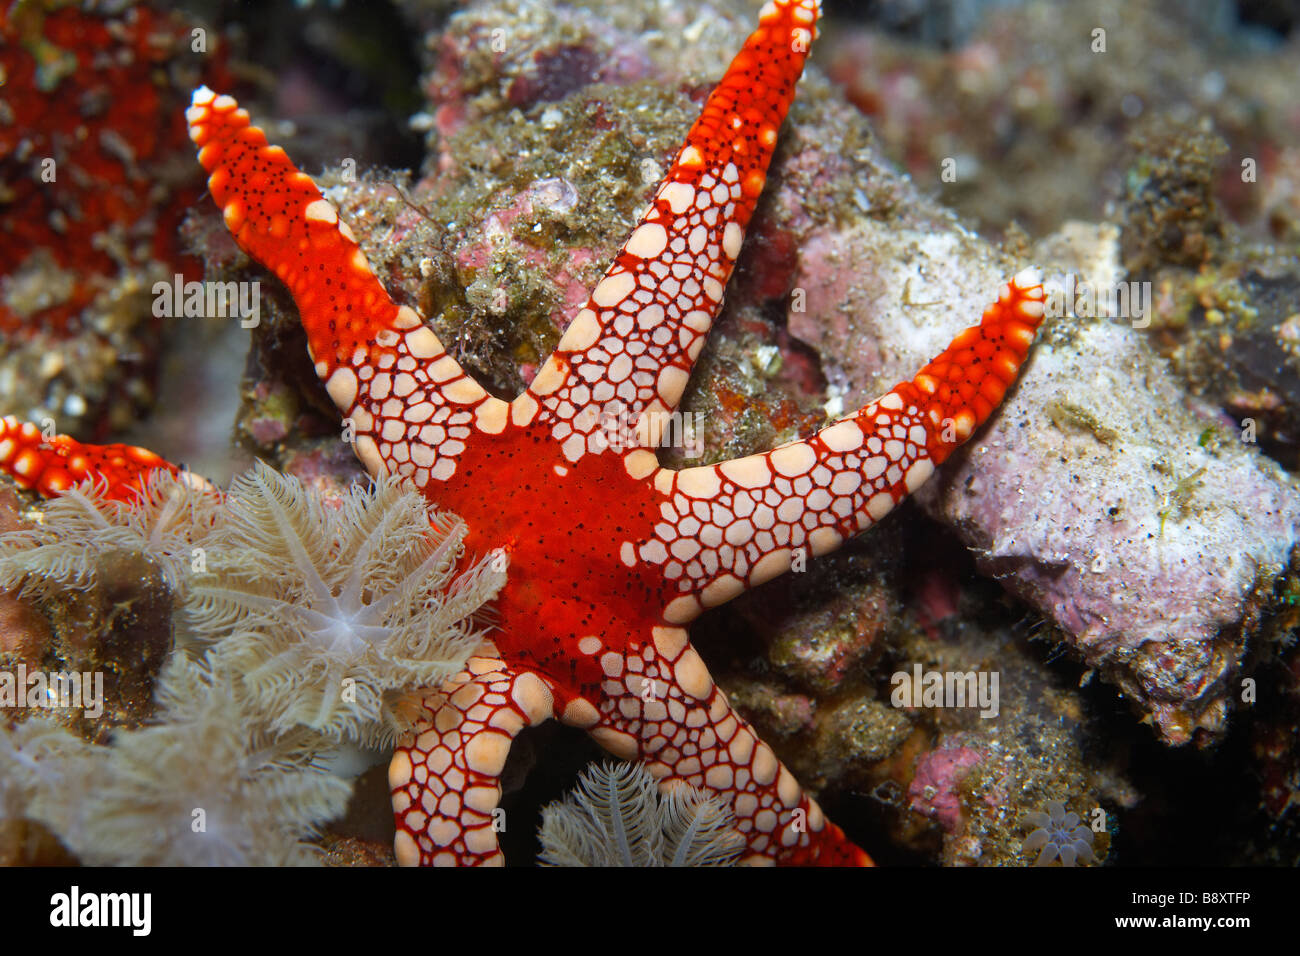 Sea Star (Fromia monilis) in the Lembeh Straits North Sulawesi, Indonesia - Stock Image